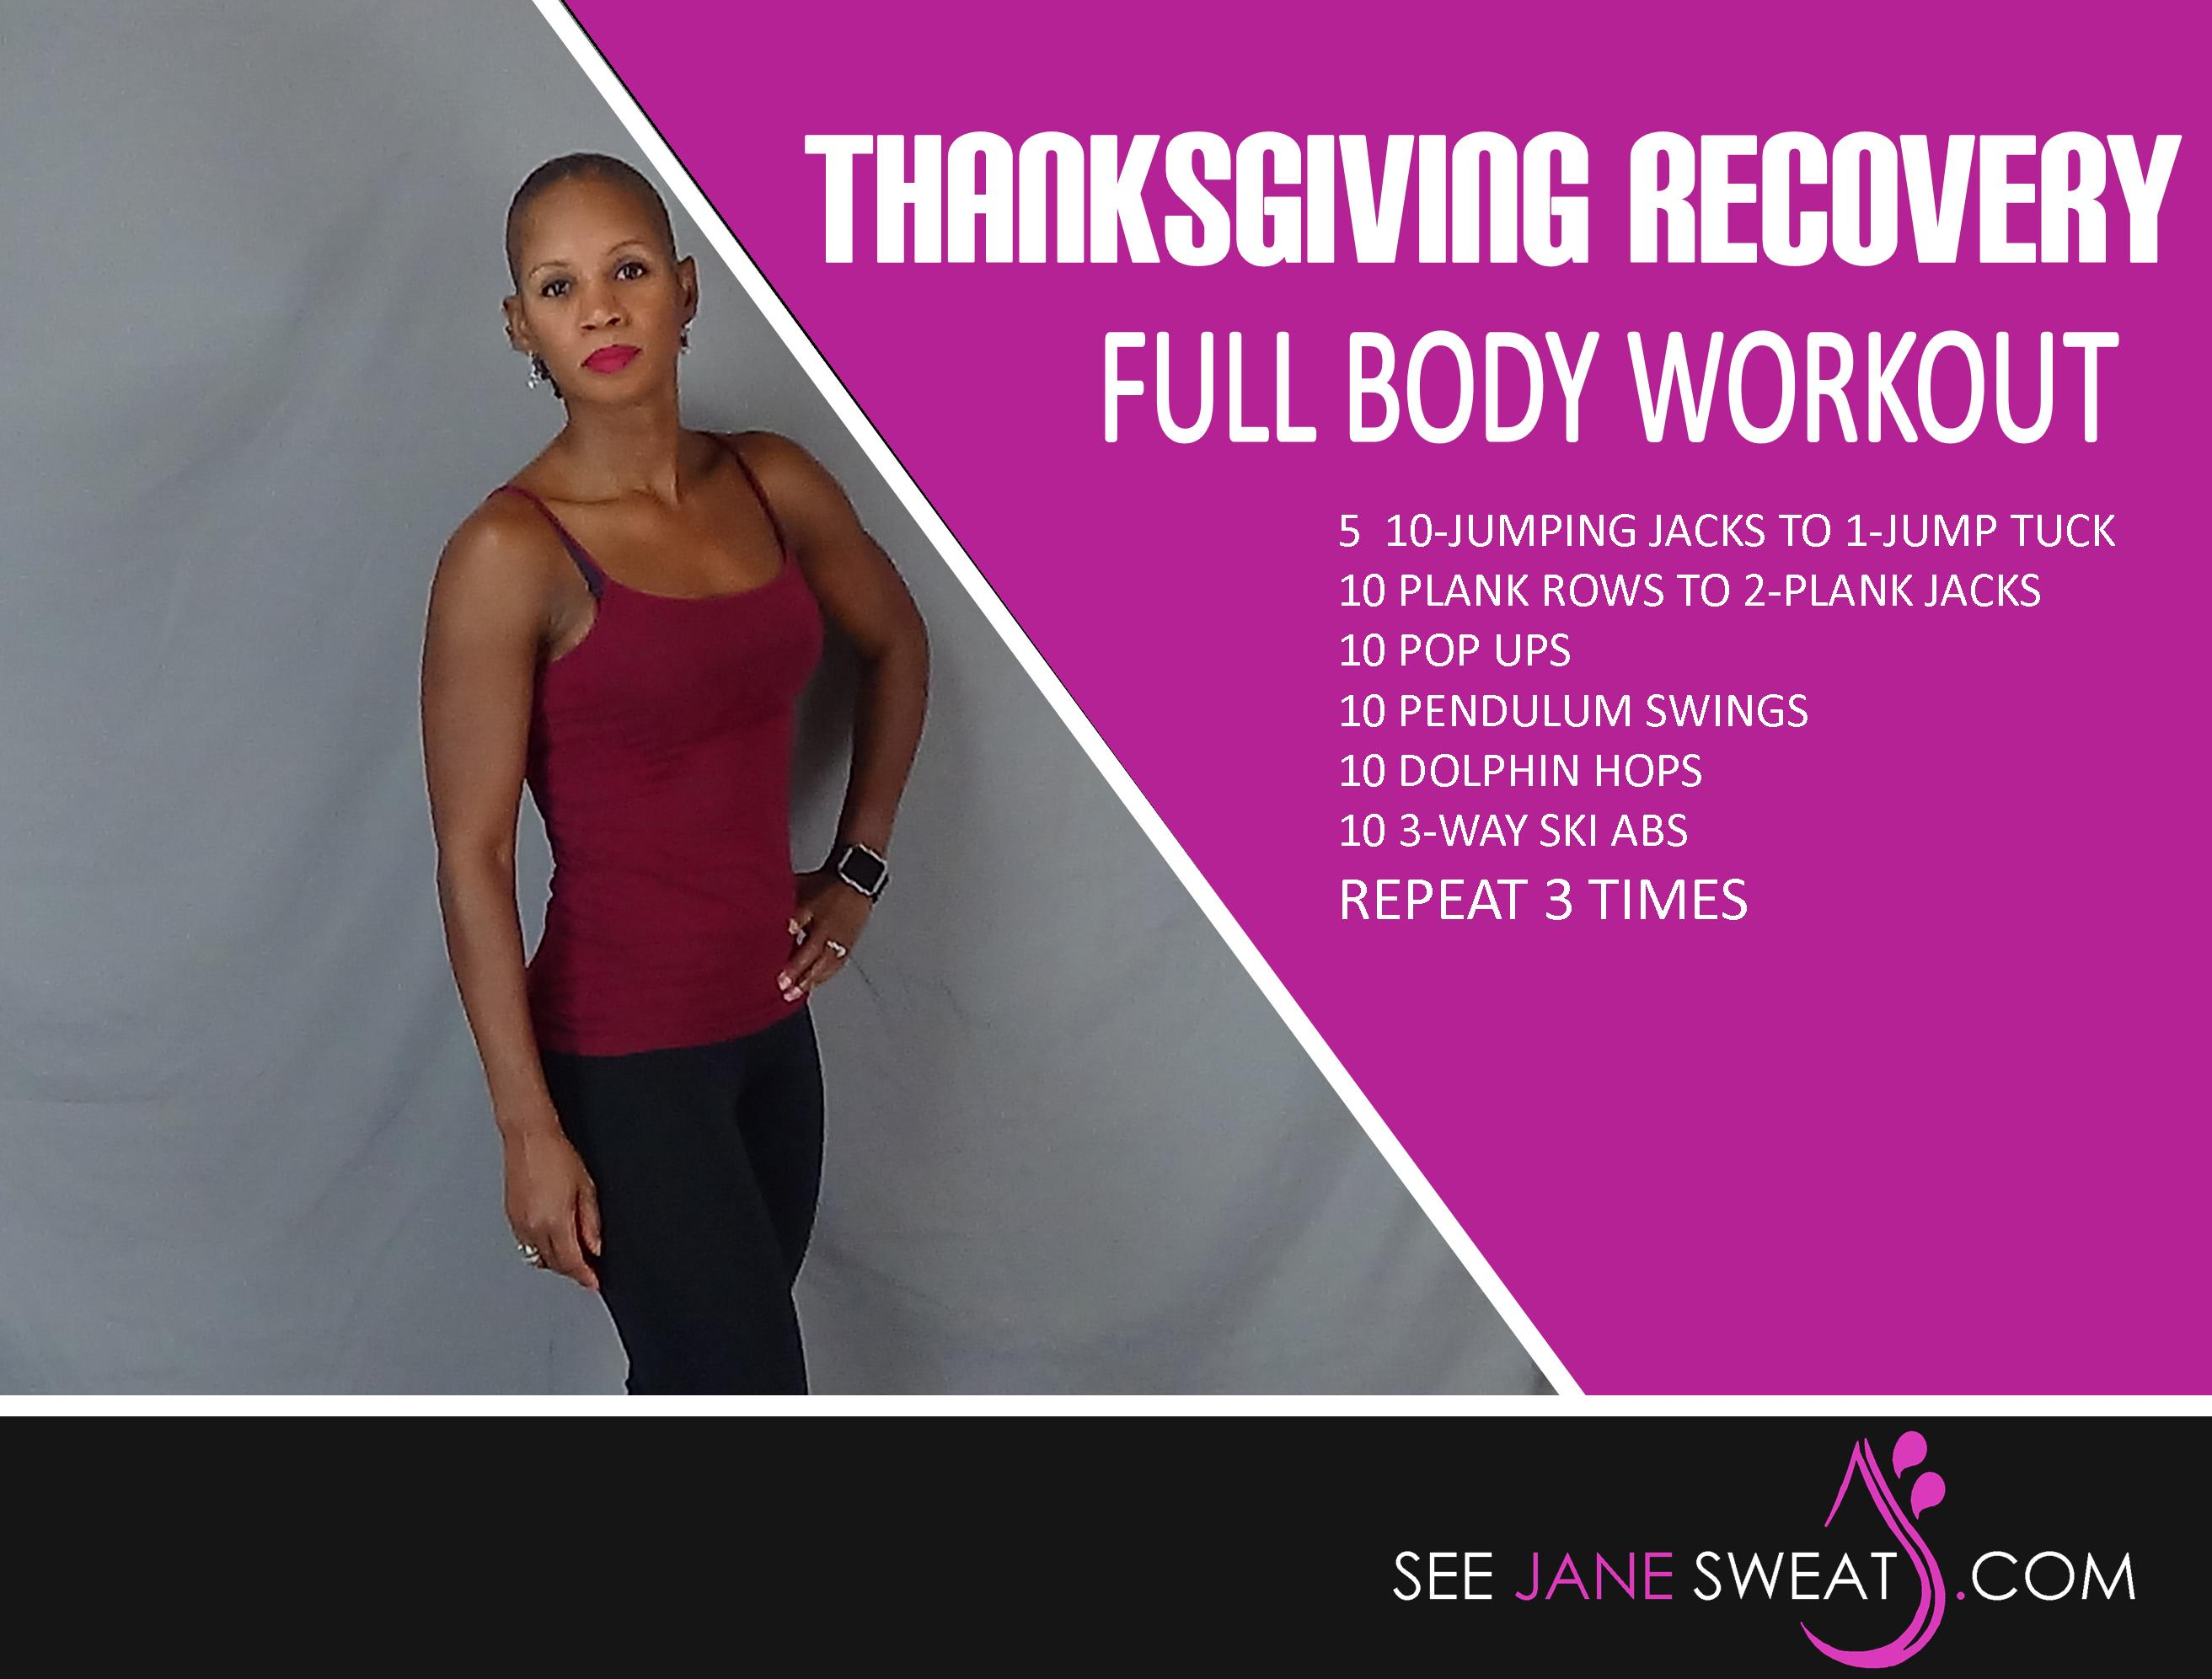 Thanksgiving Recovery Full Body Workout